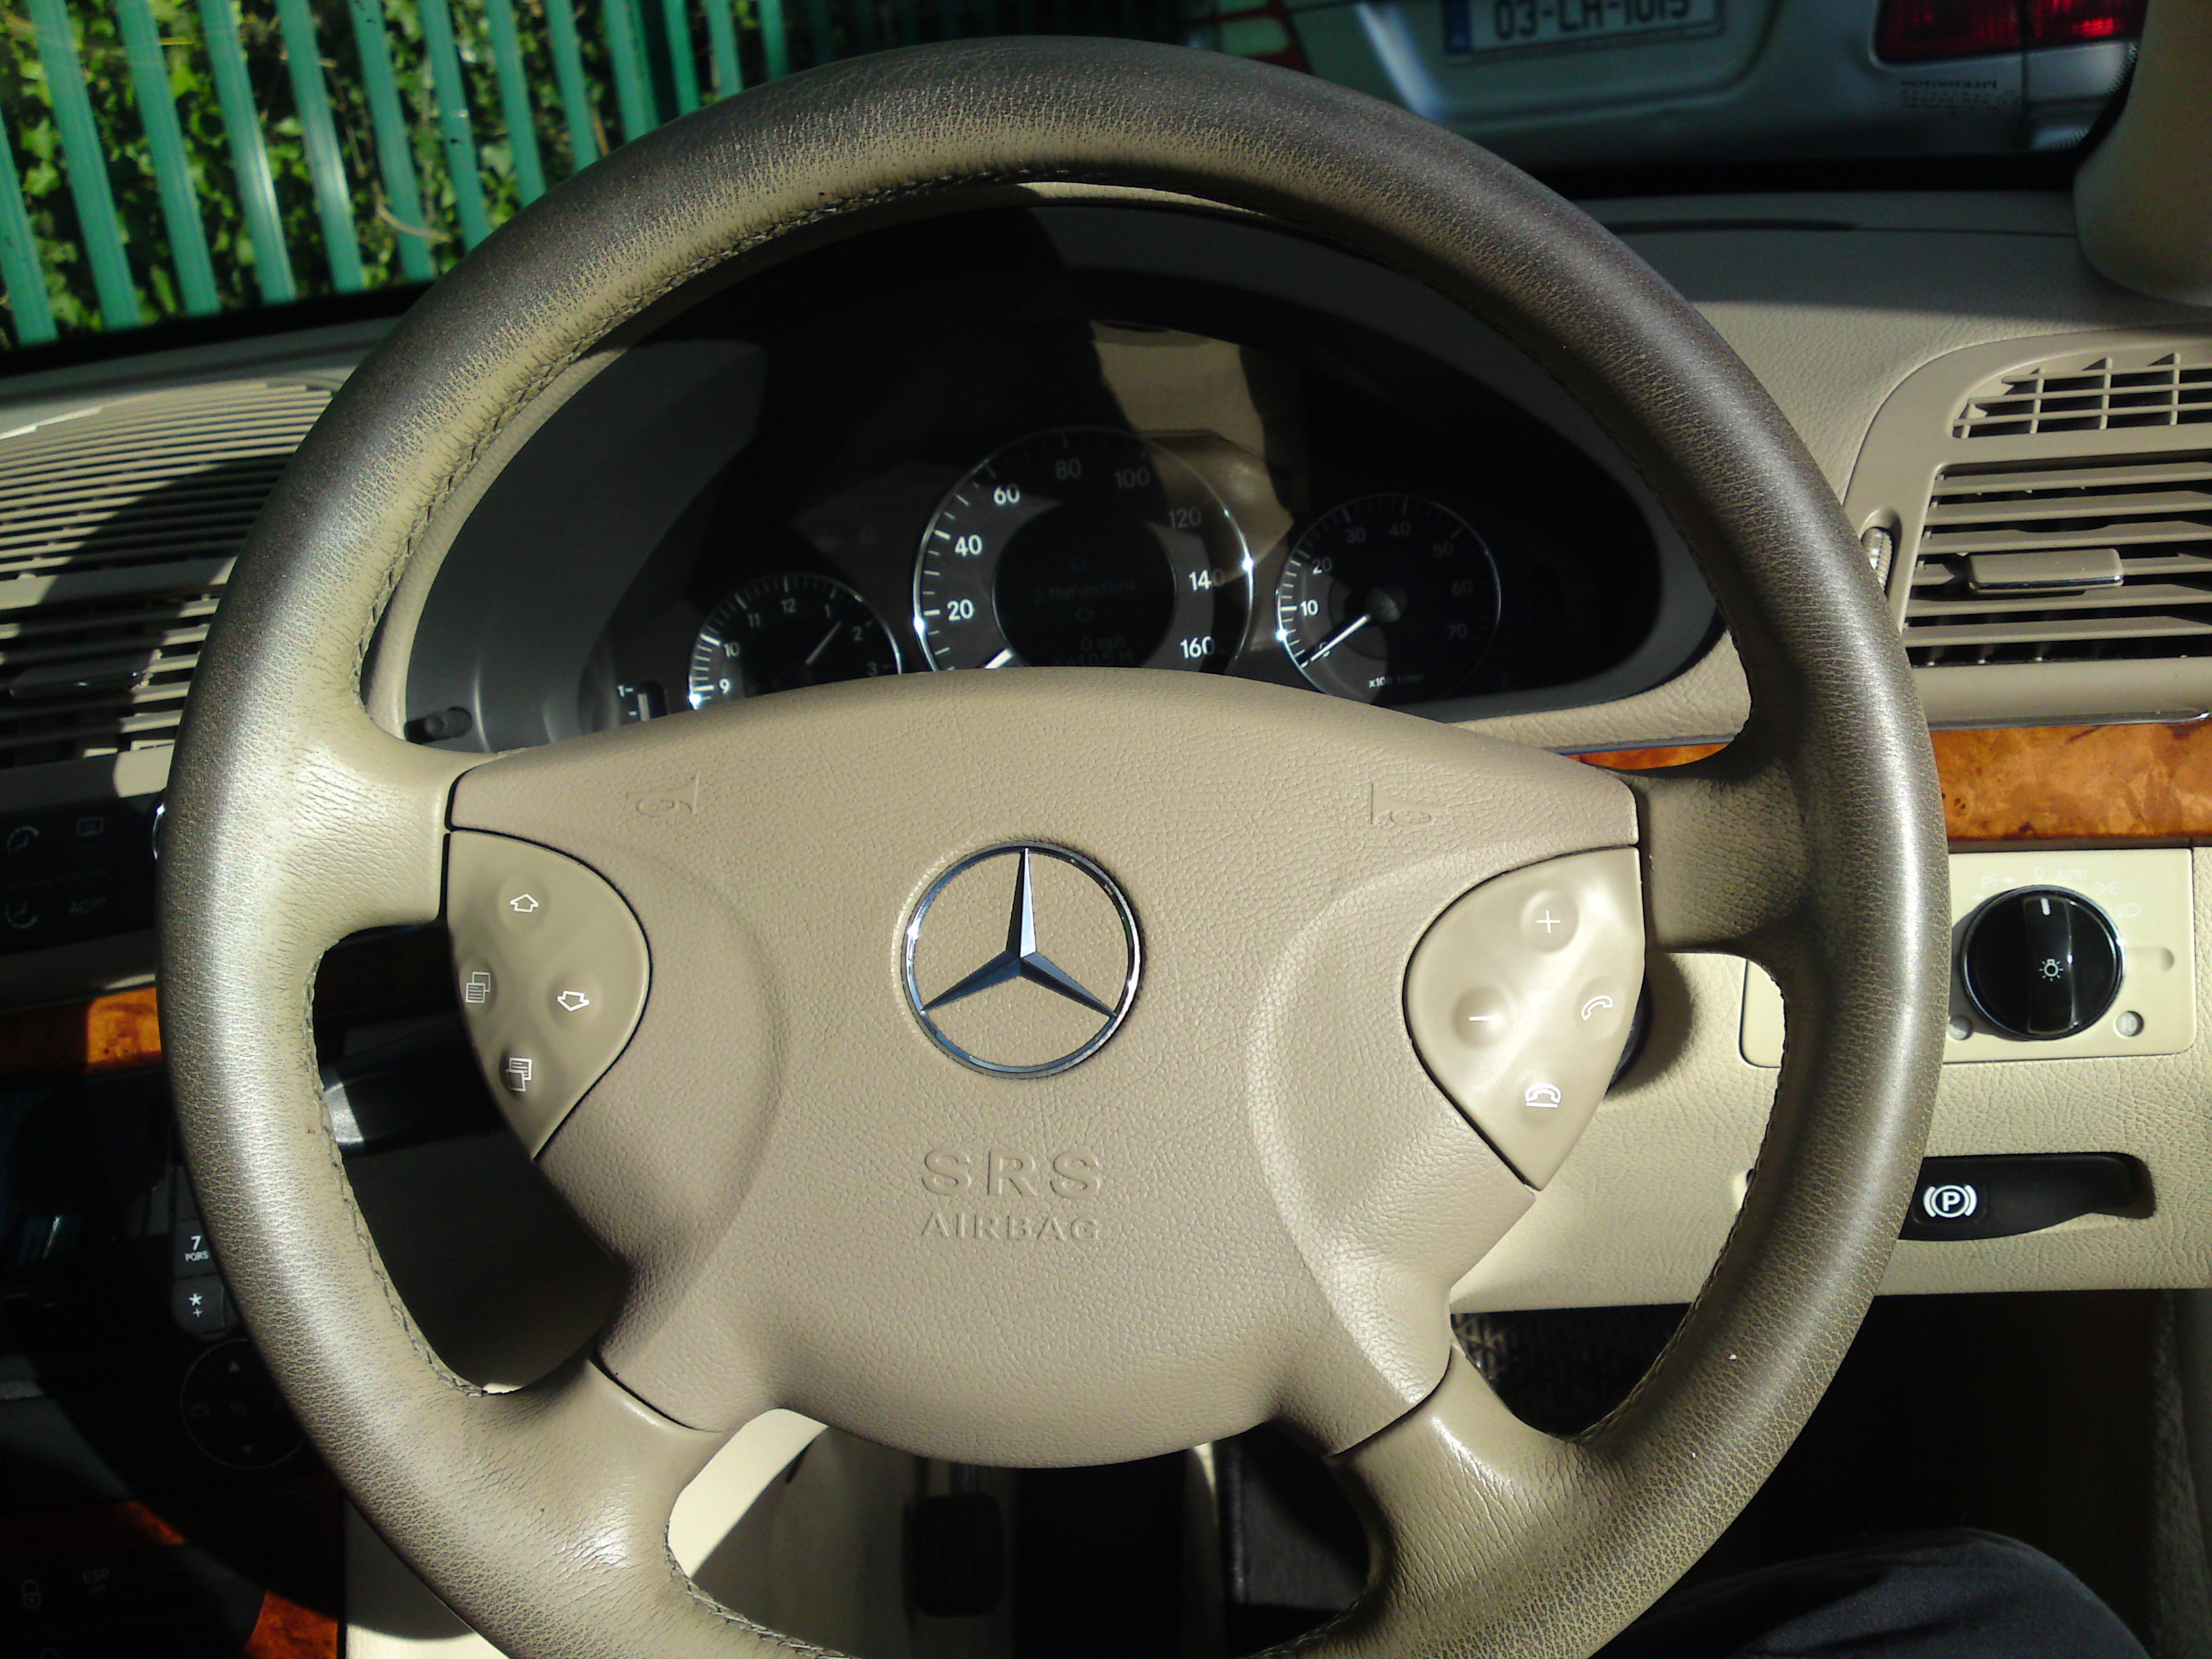 Mercedes E Class Steering Wheel with colour loss